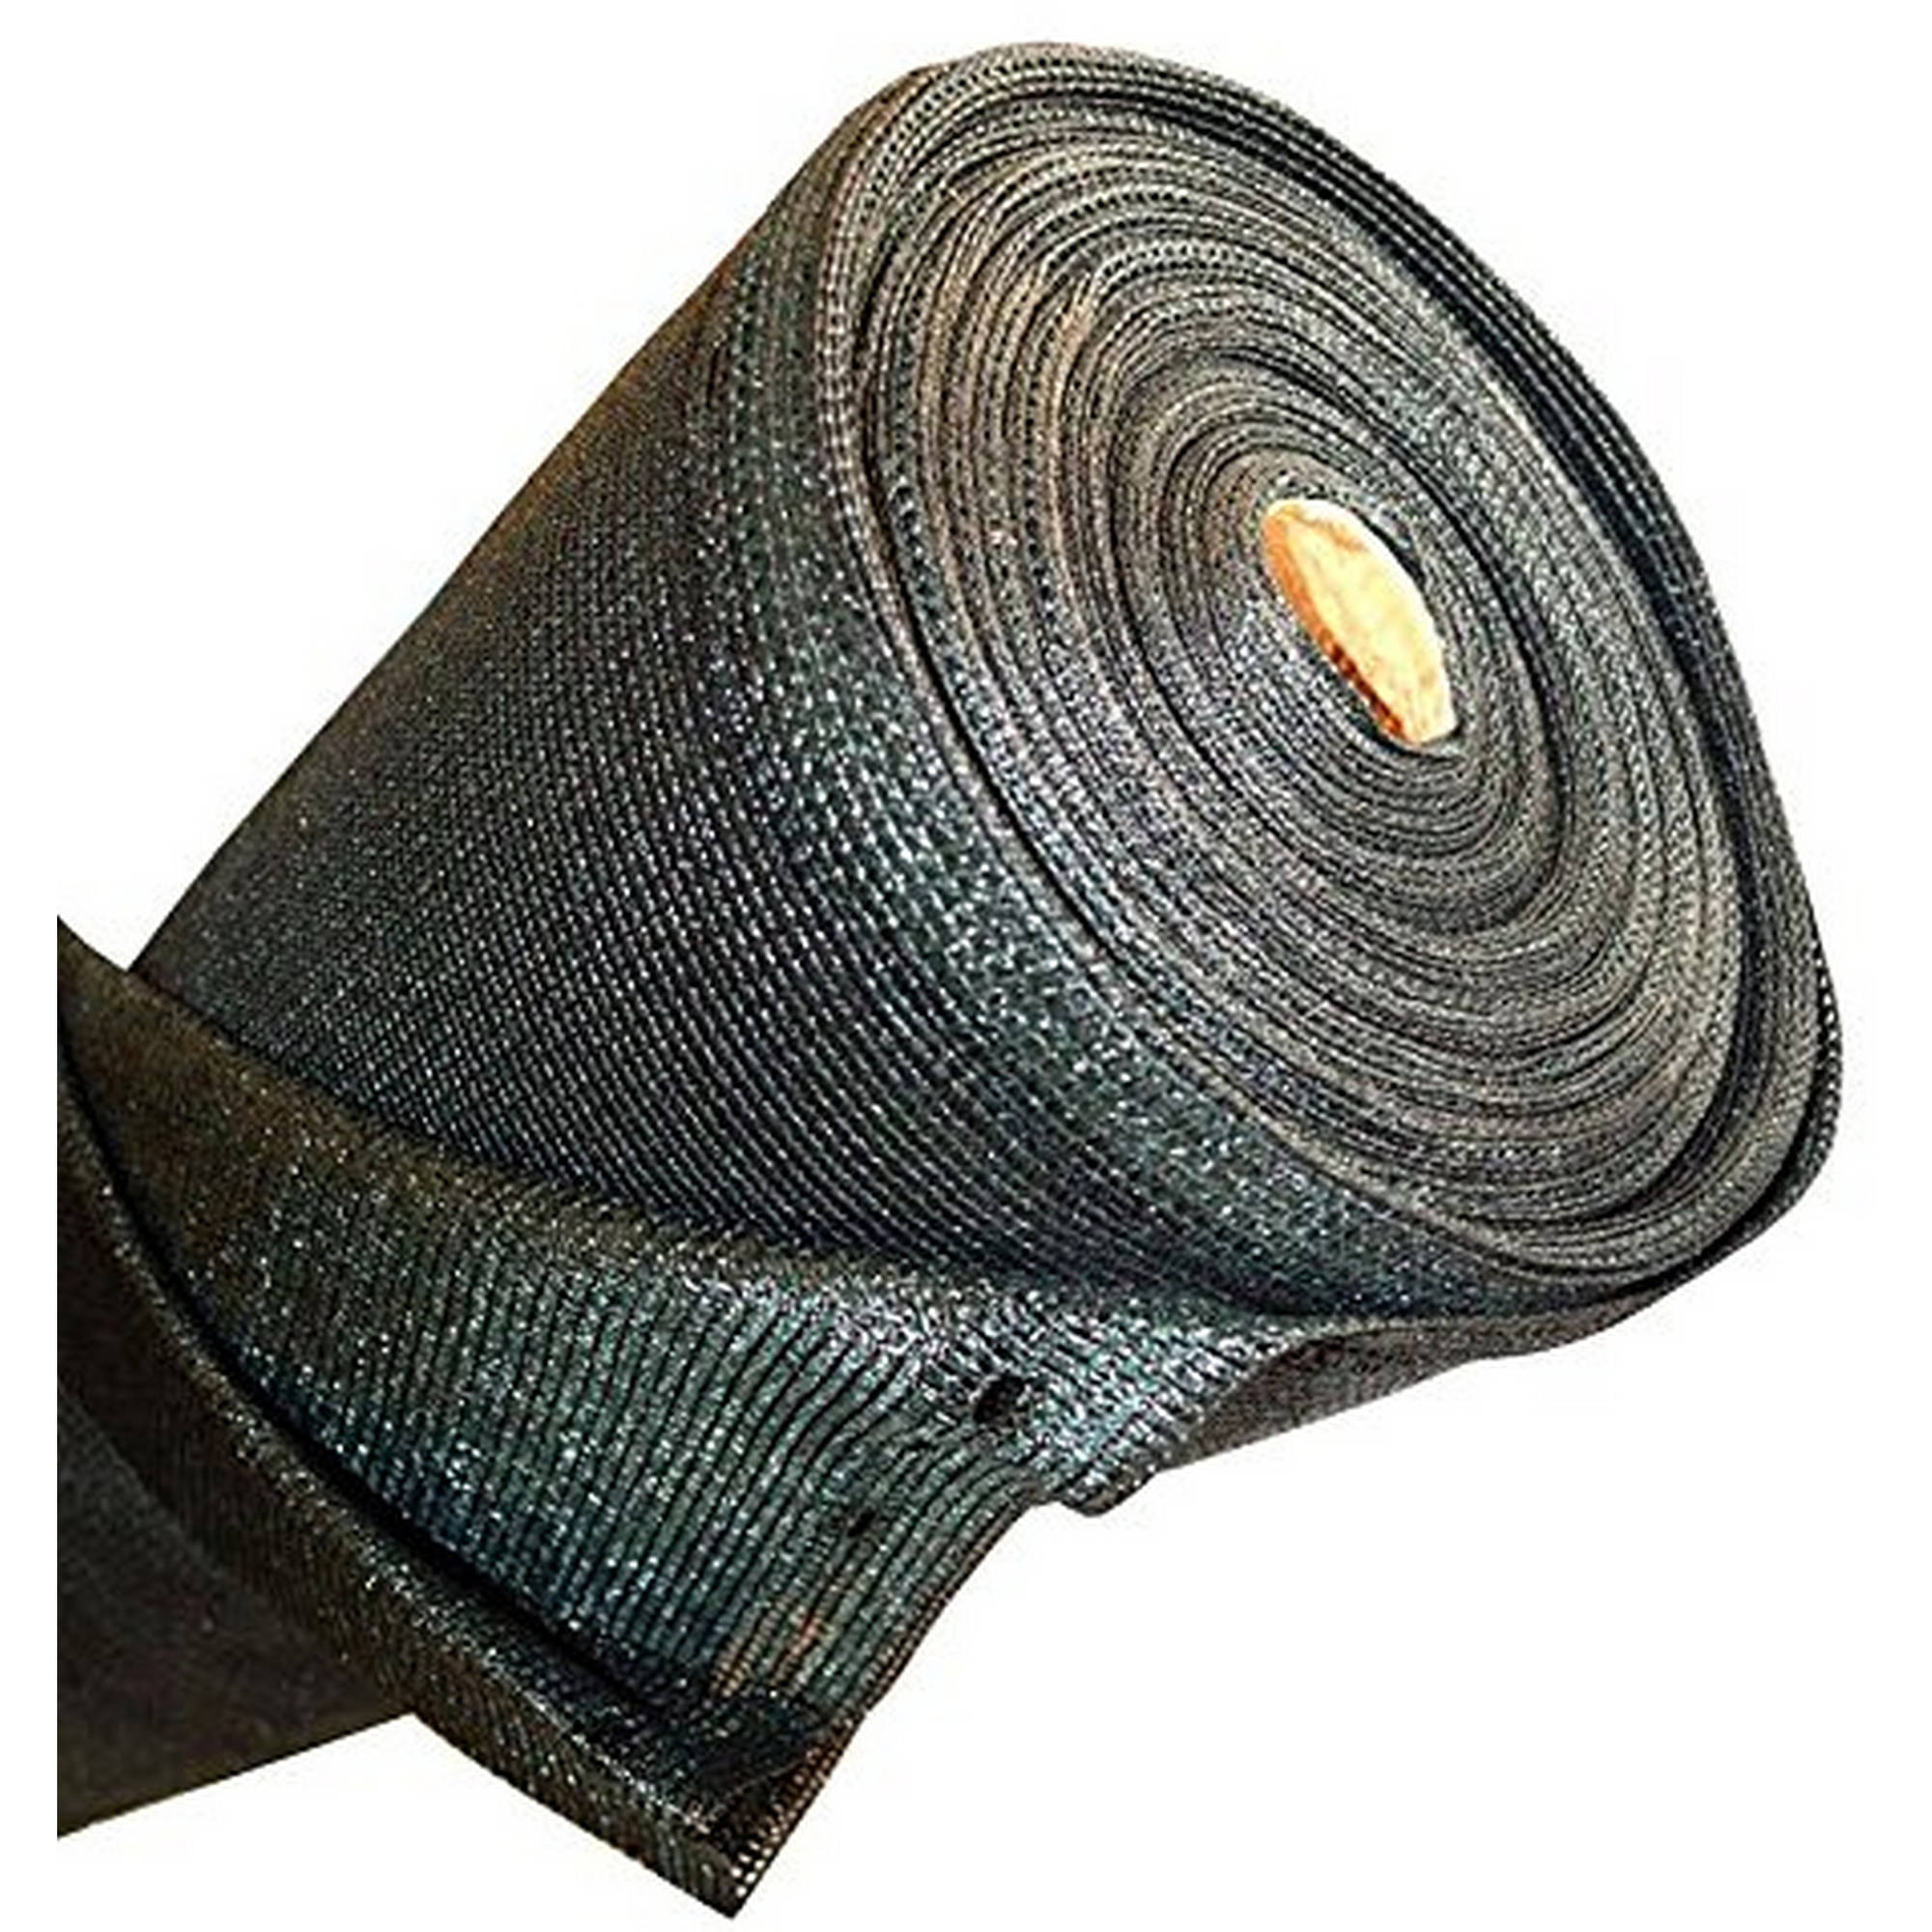 Aleko 6' x 150' Sample Eye Dark Green Fence Privacy Screen Windscreen Shade Cover Mesh Fabric